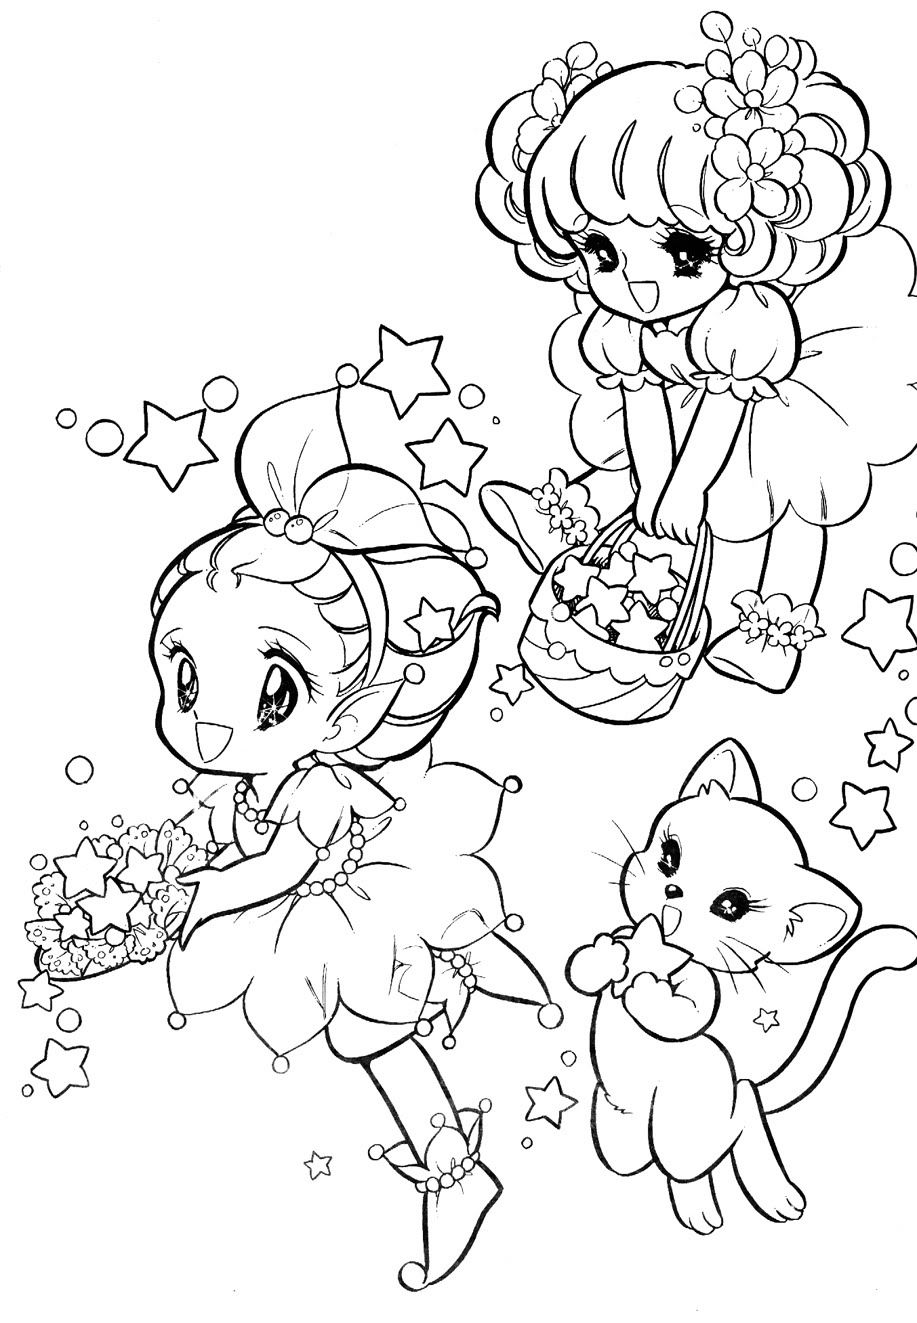 Photo By Nour Serhan Cute Coloring Pages Coloring Books Vintage Coloring Books